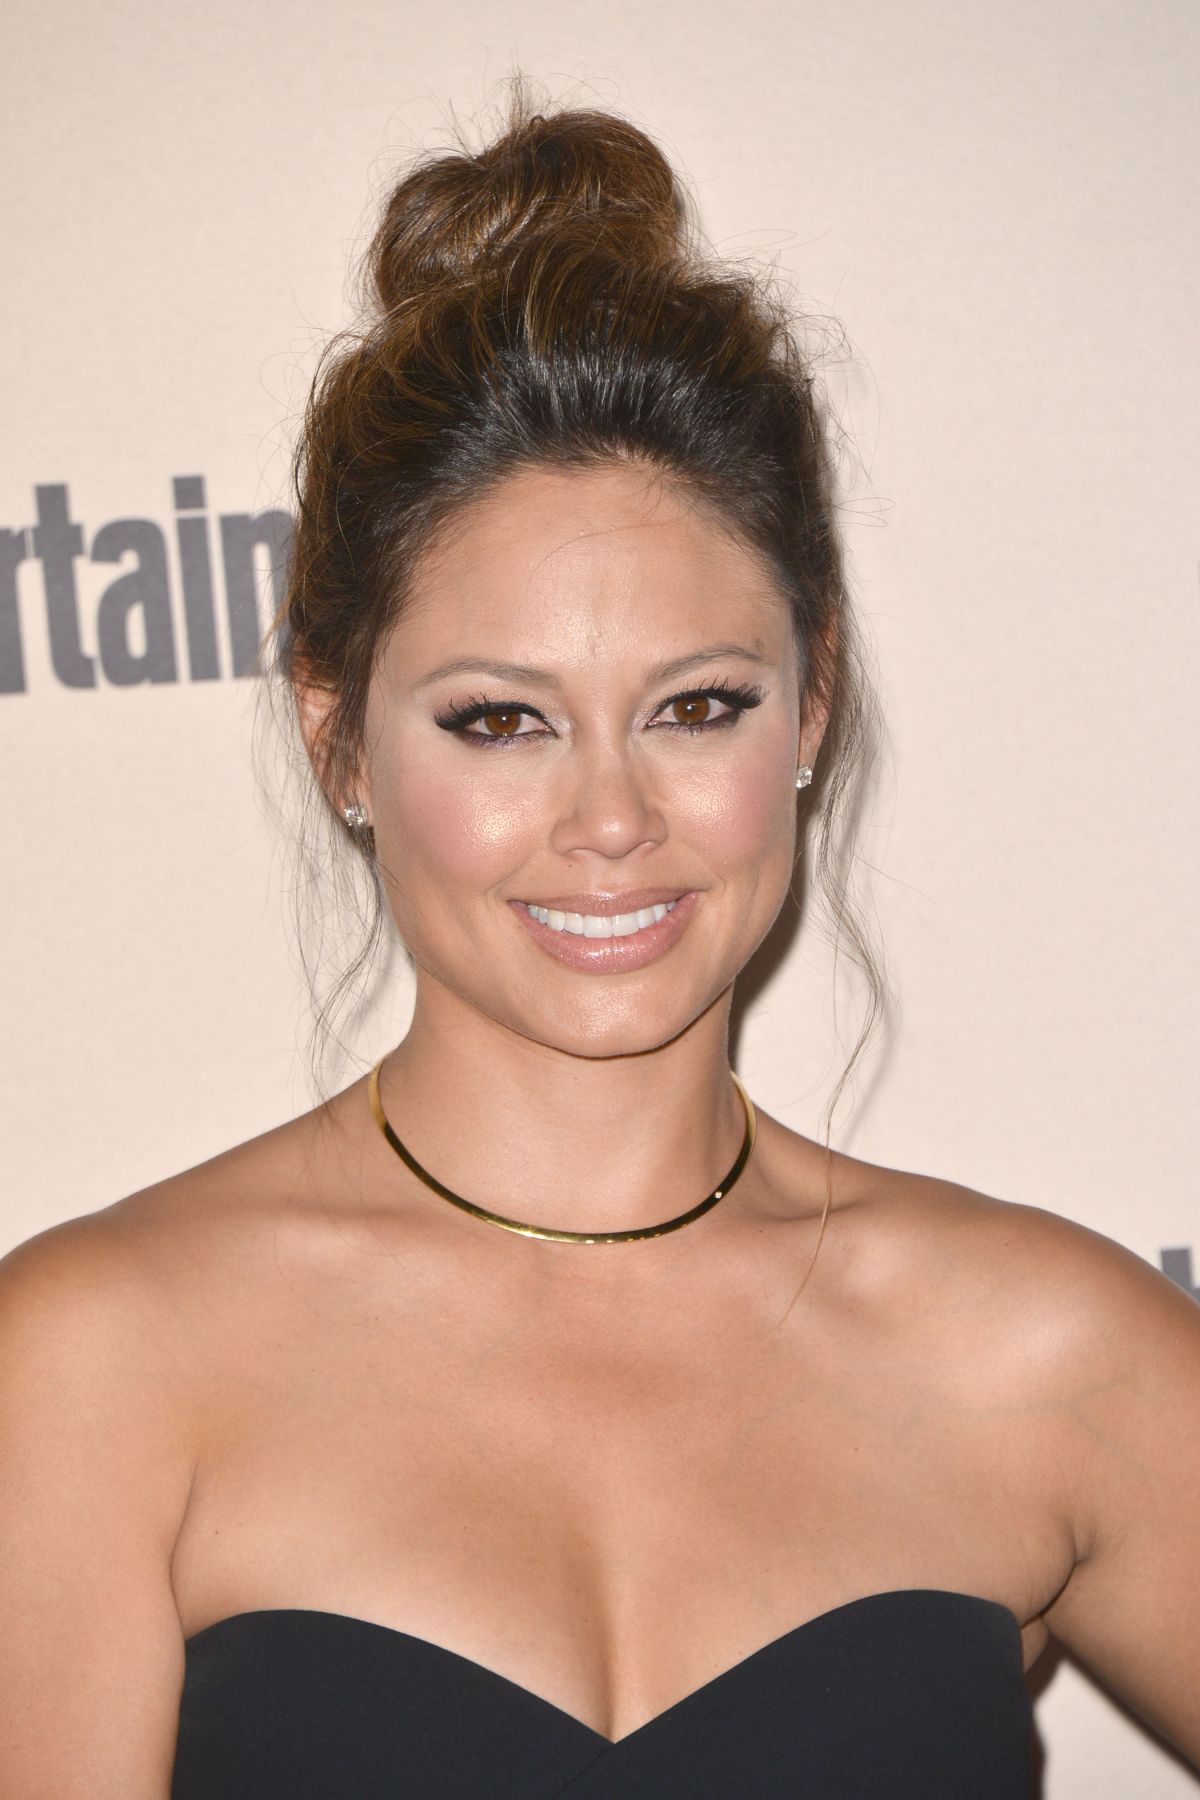 vanessa lachey truth be told